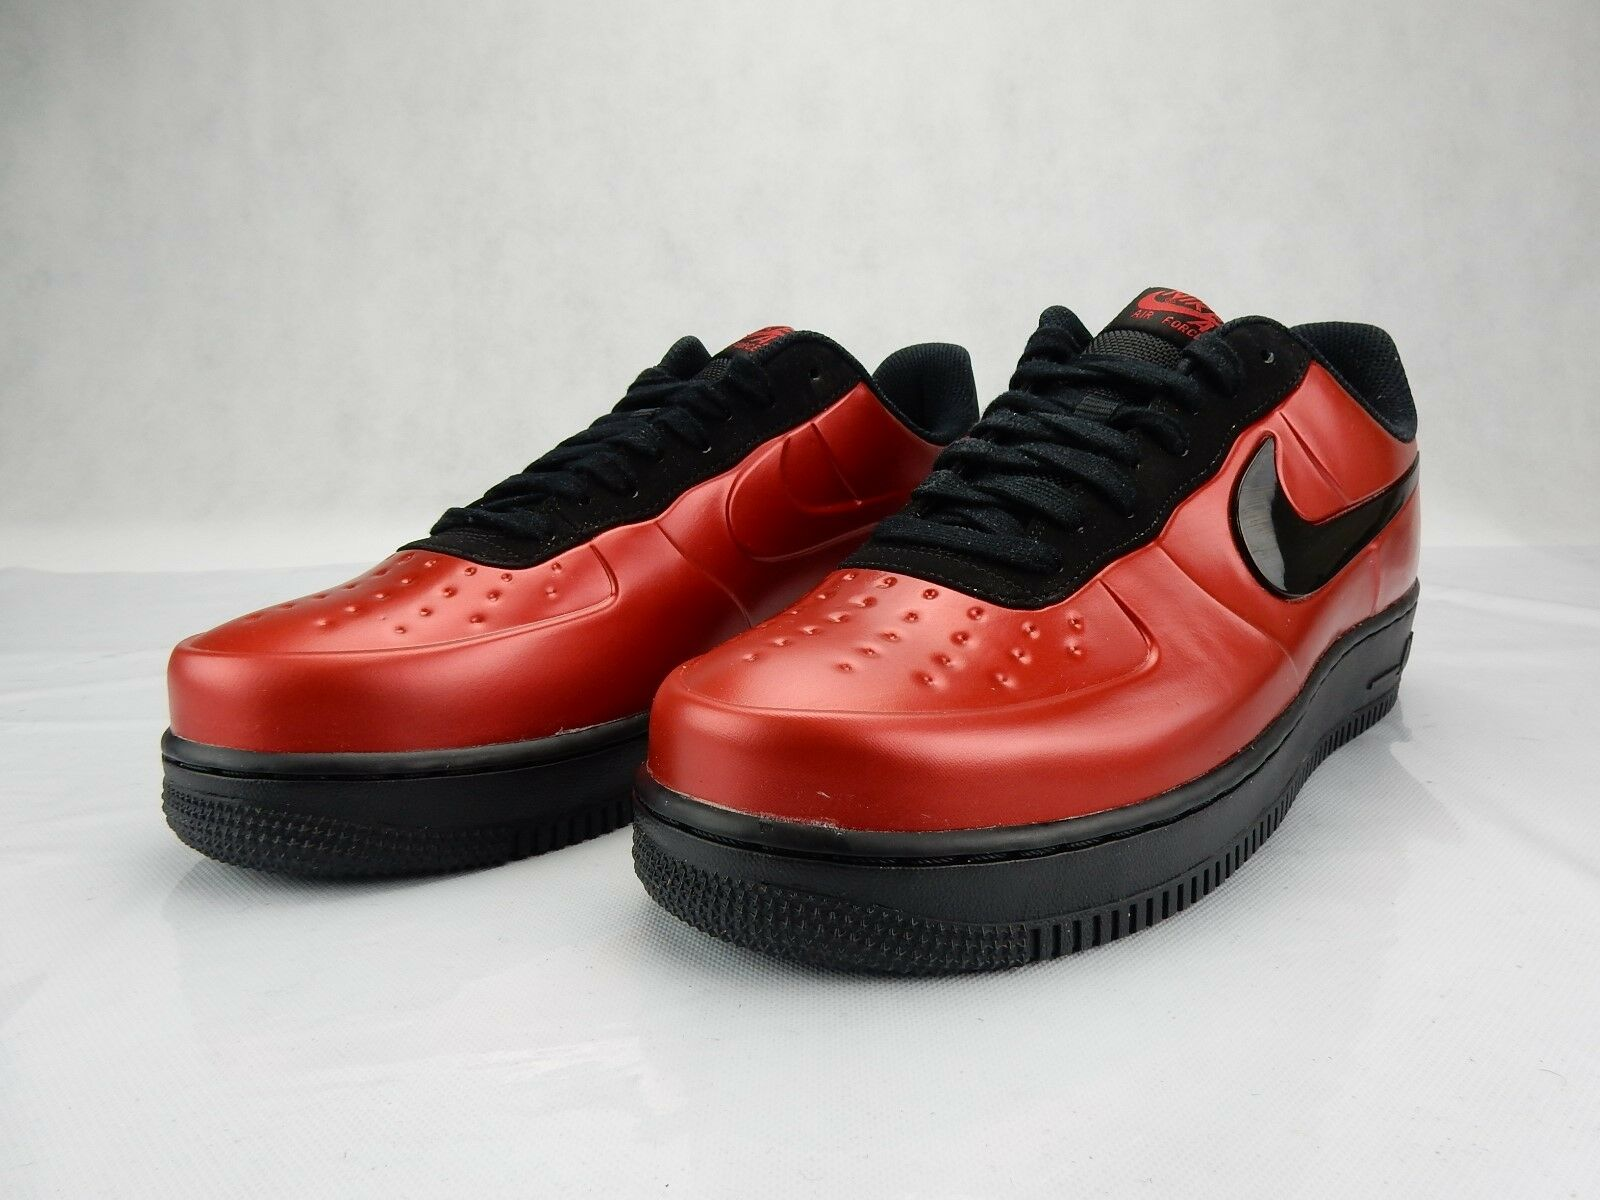 Nike Air Force 1 Foamposite Pro CUP Gym Red AJ3664 601 Mens Size 9 Sneakers s